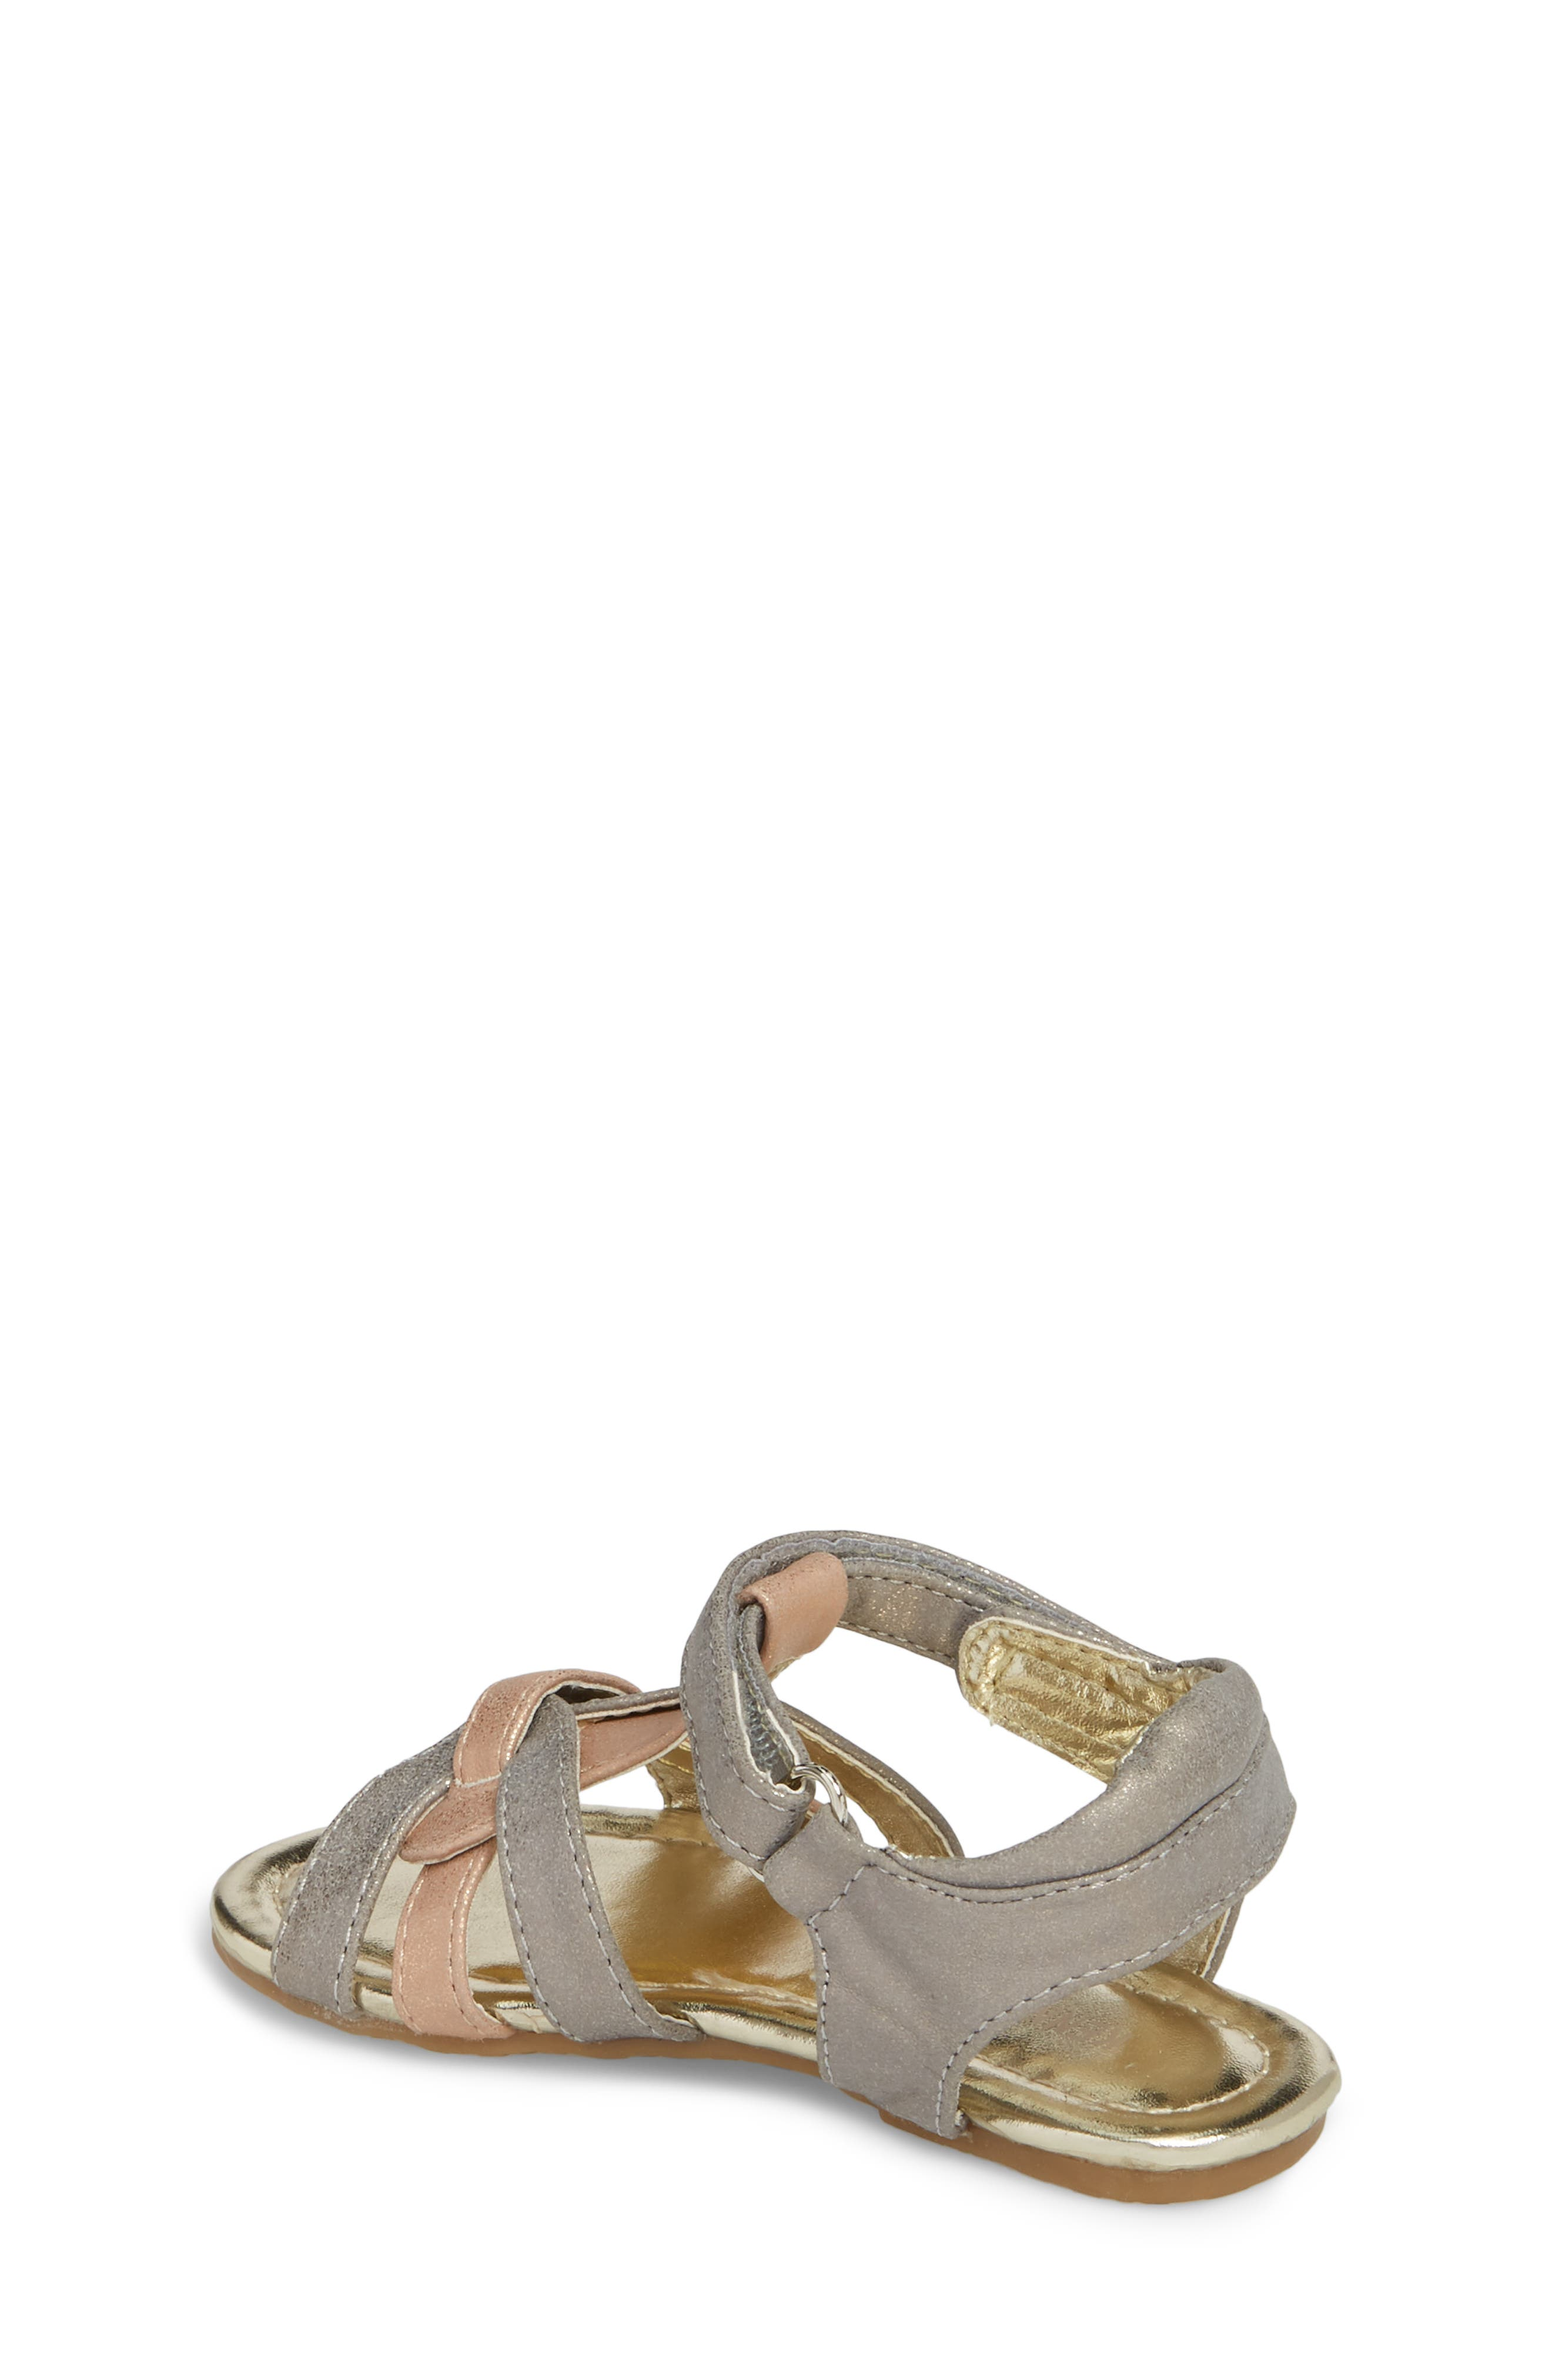 Echo Strappy Sandal,                             Alternate thumbnail 2, color,                             Rose Metallic